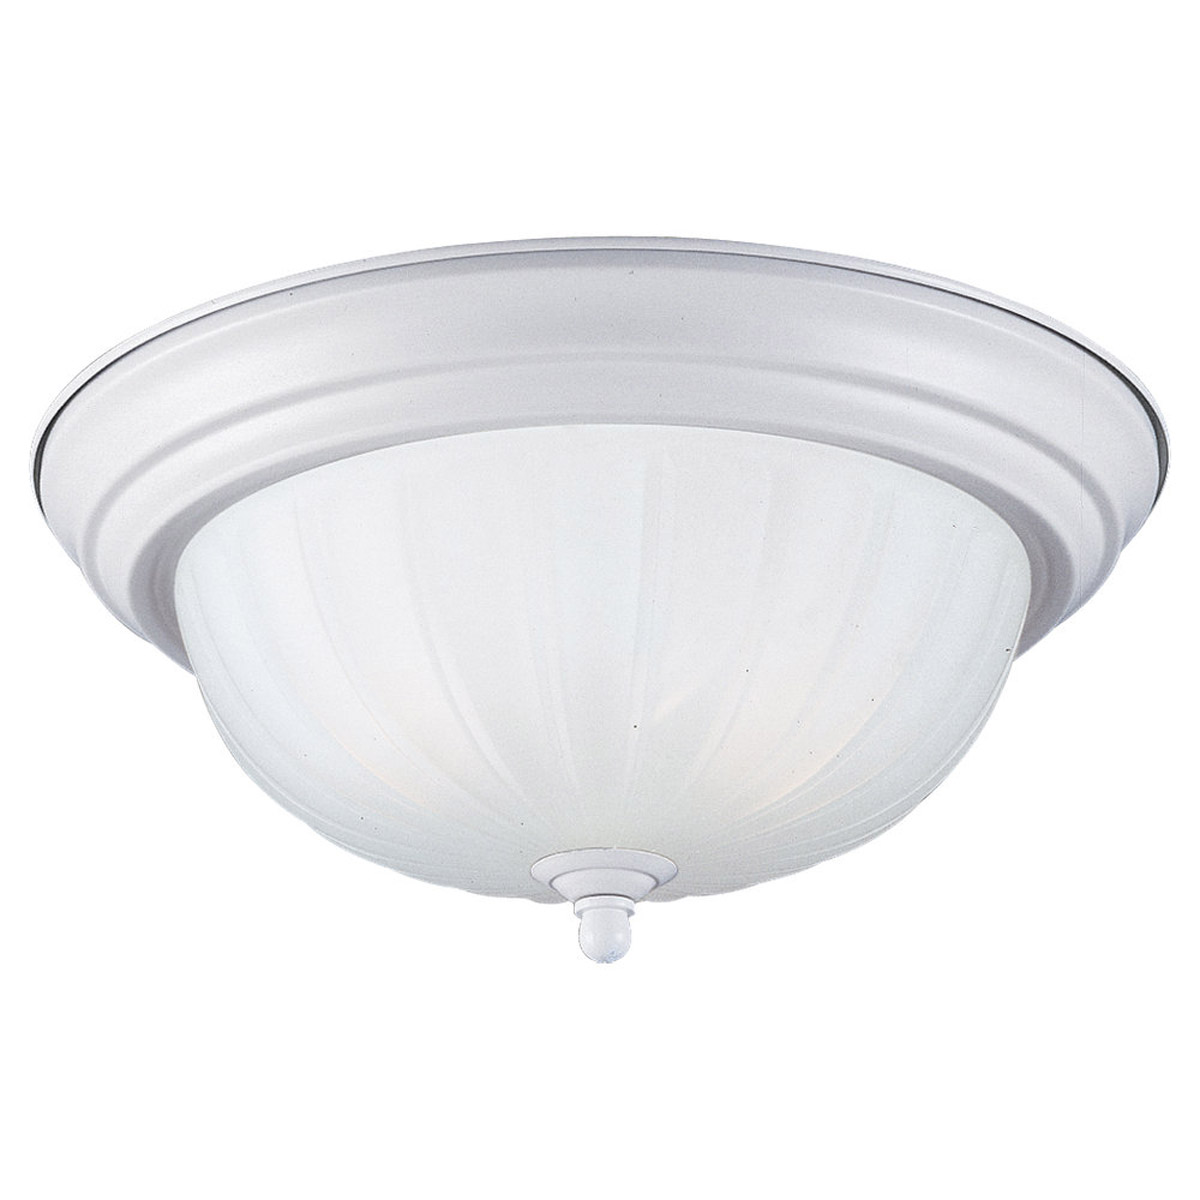 Sea Gull Lighting Floyd 1 Light Flush Mount in Textured Snow 79504BLE-162